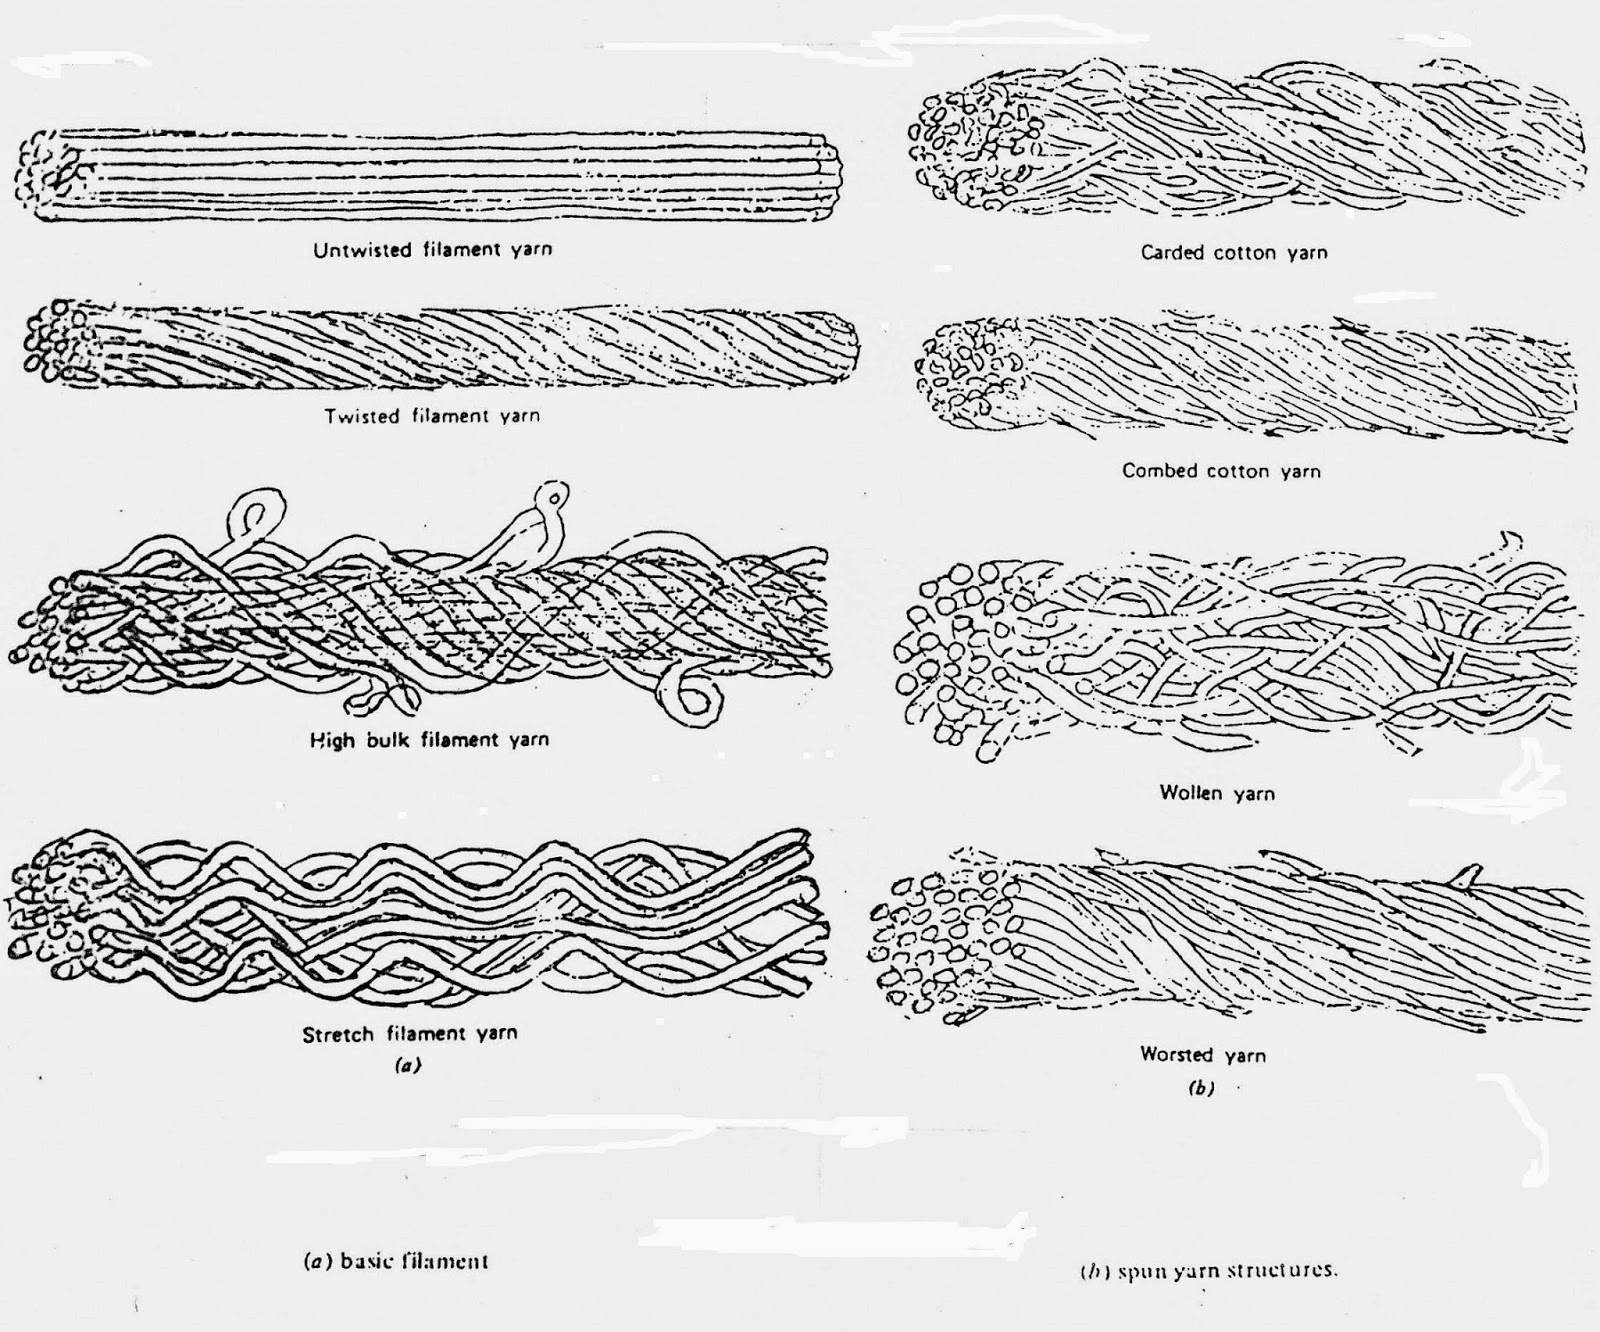 Crocheting Yarn Types : yarns definition of yarn yarns from fibers to yarns definition of yarn ...